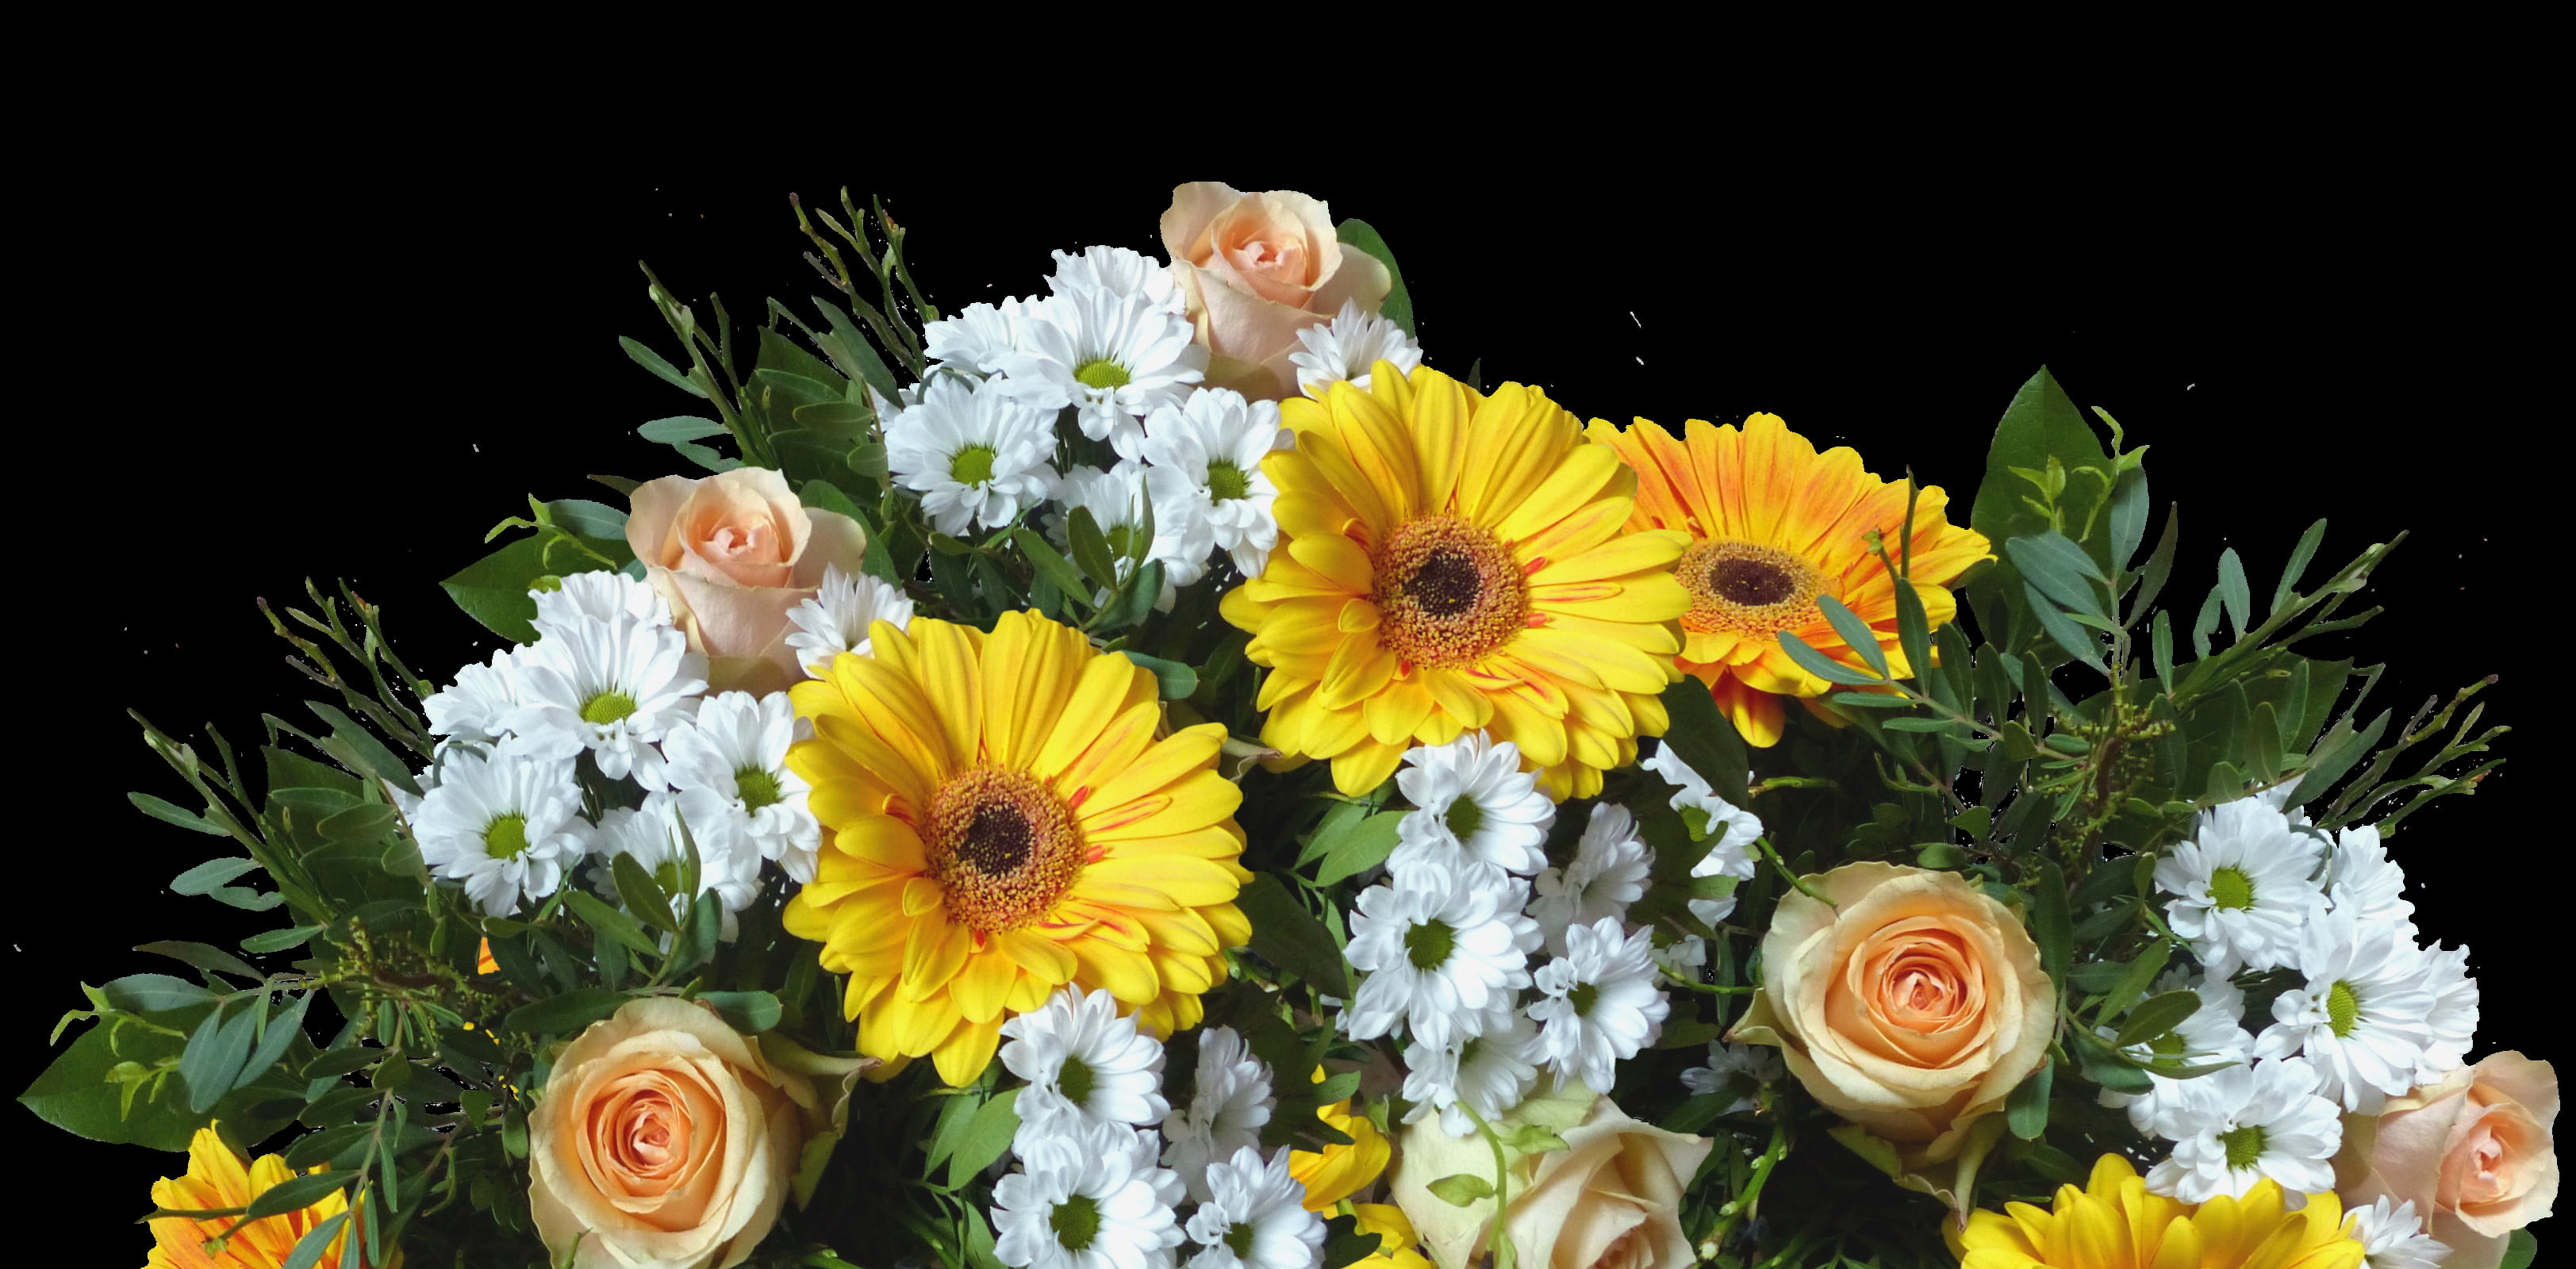 Flower Bouquet Wallpapers 62 Background Pictures